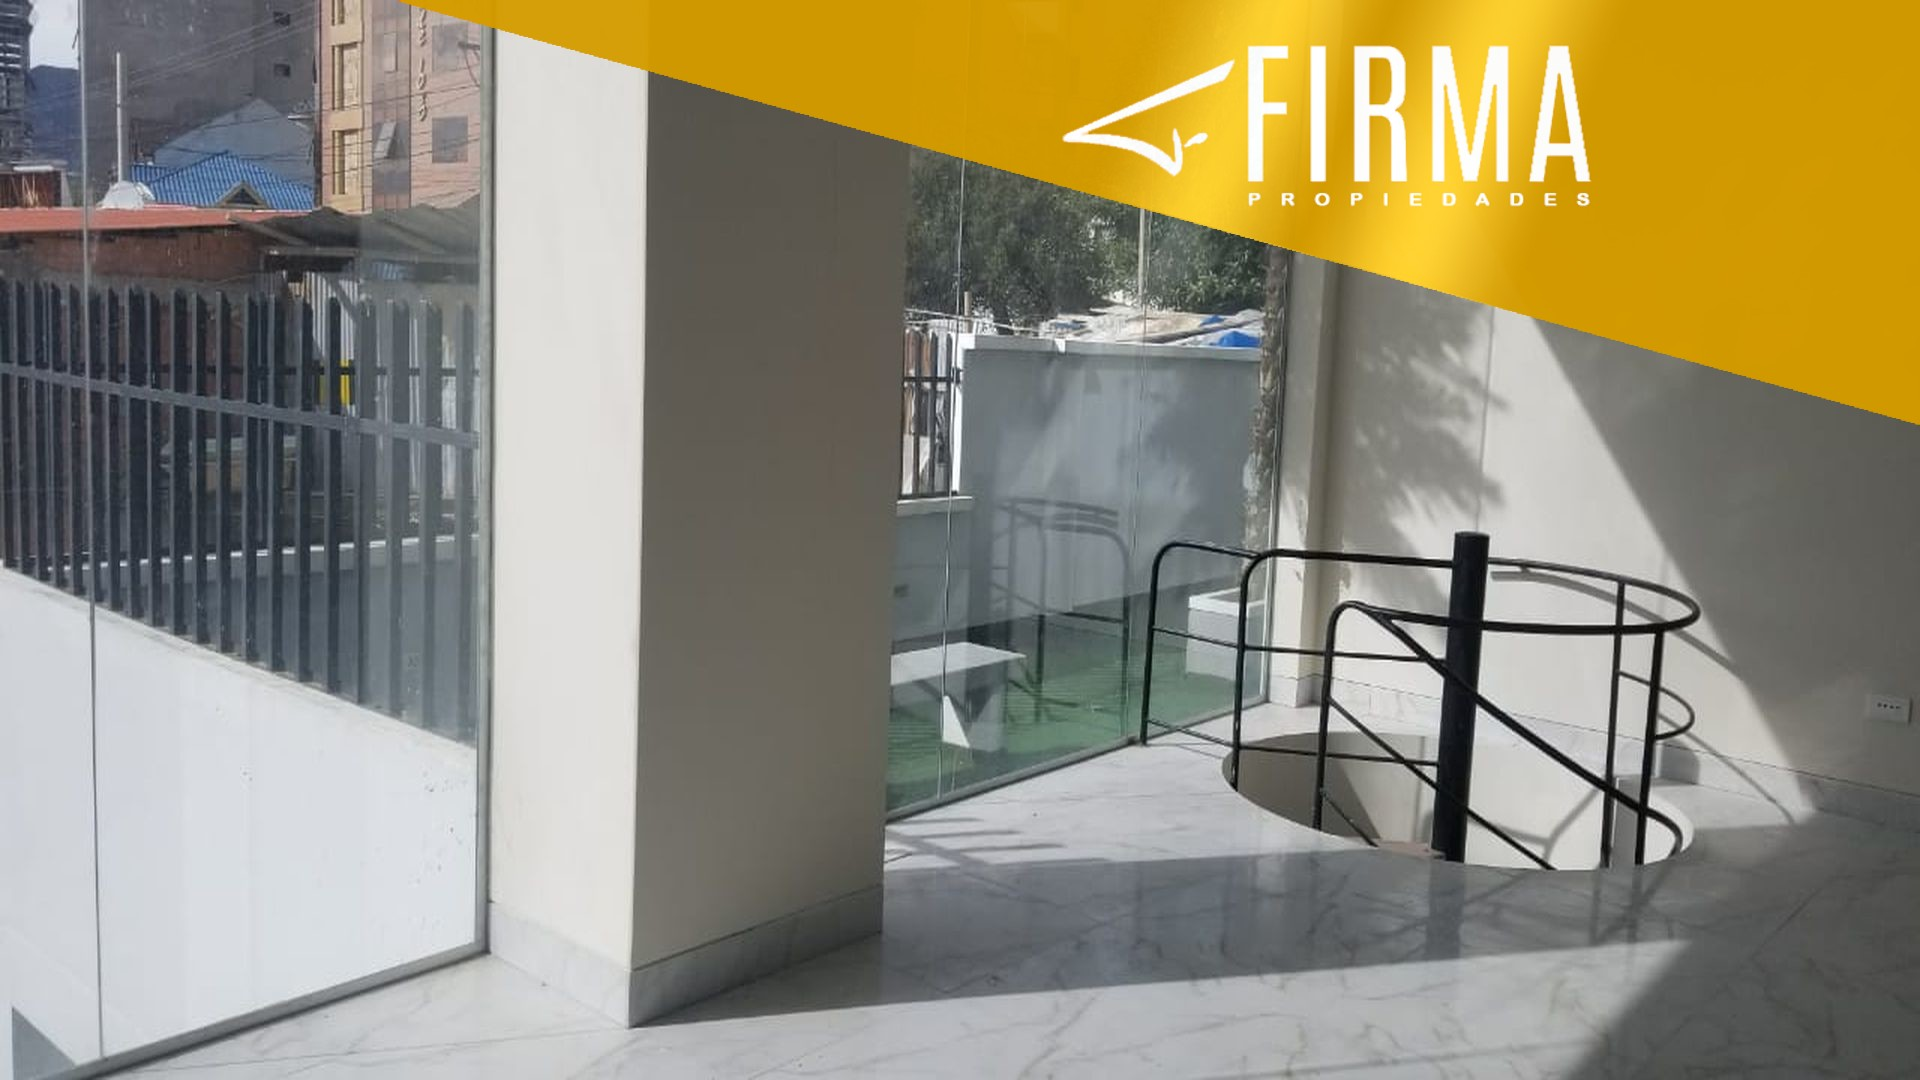 Local comercial en Venta FLV53030 – COMPRA TU LOCAL EN SAN MIGUEL Foto 3